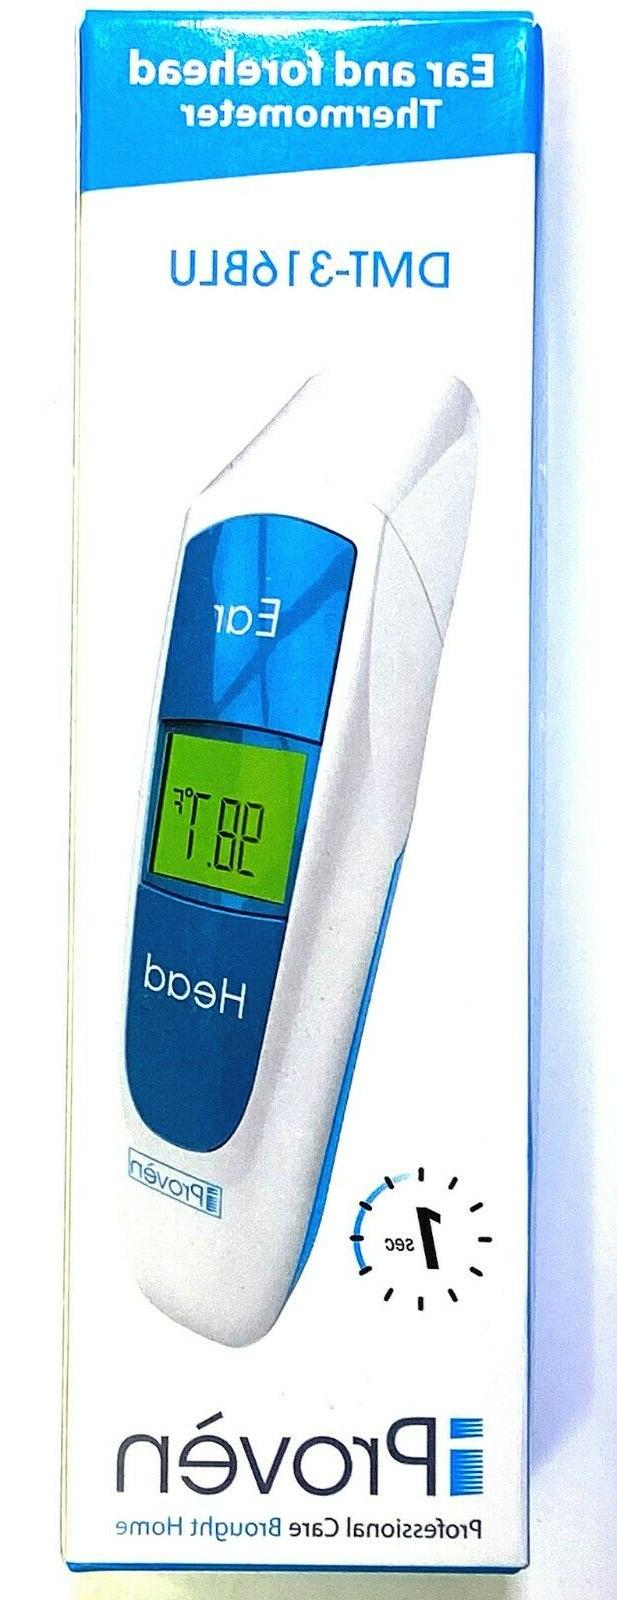 iProven Dual Ear Forehead Fever Alarm Thermometer DMT-316